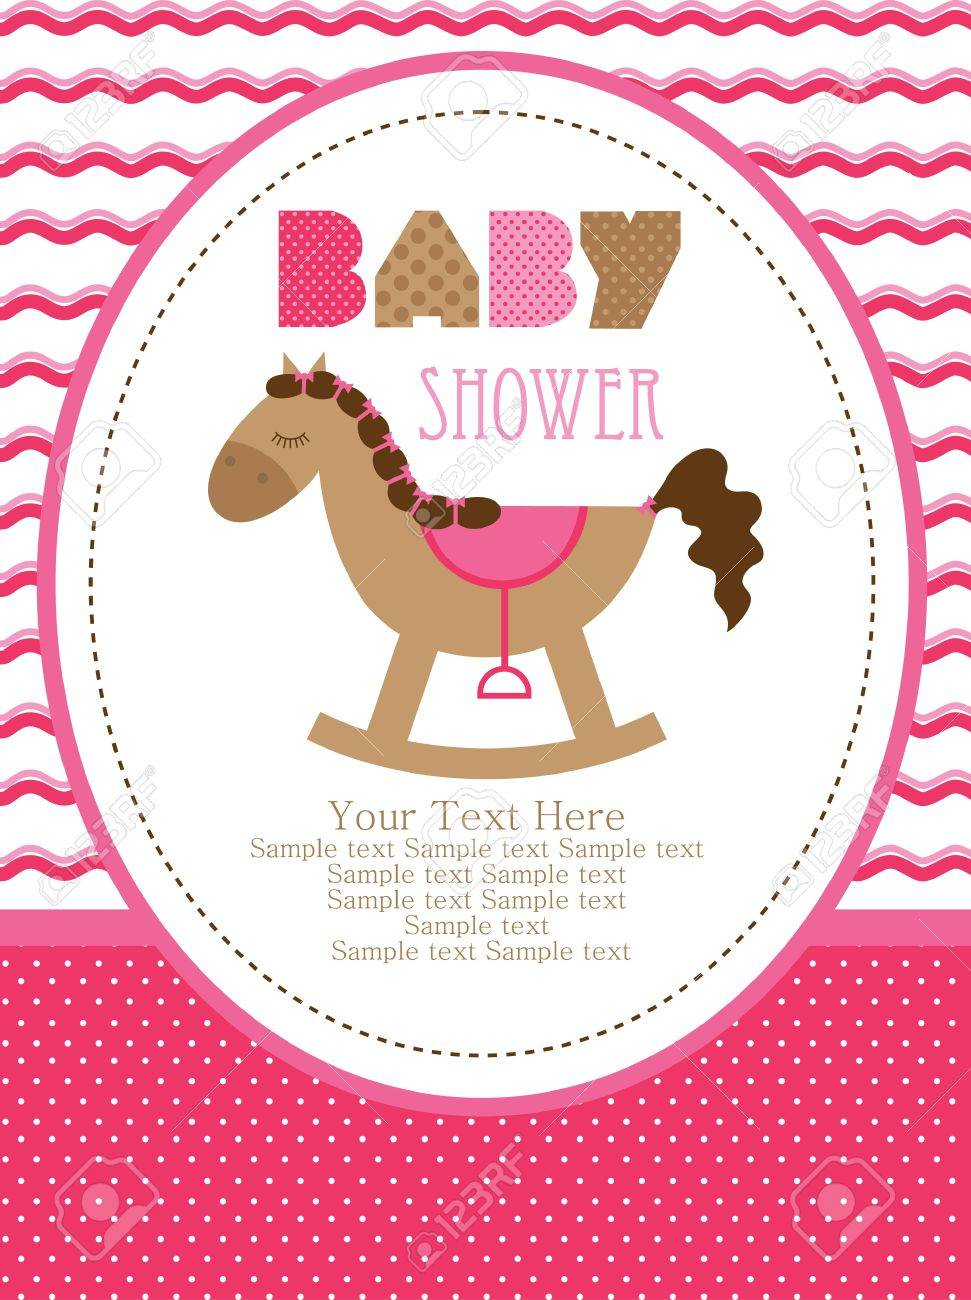 baby shower design, cute toy horse. vector illustration Stock Vector - 20562292